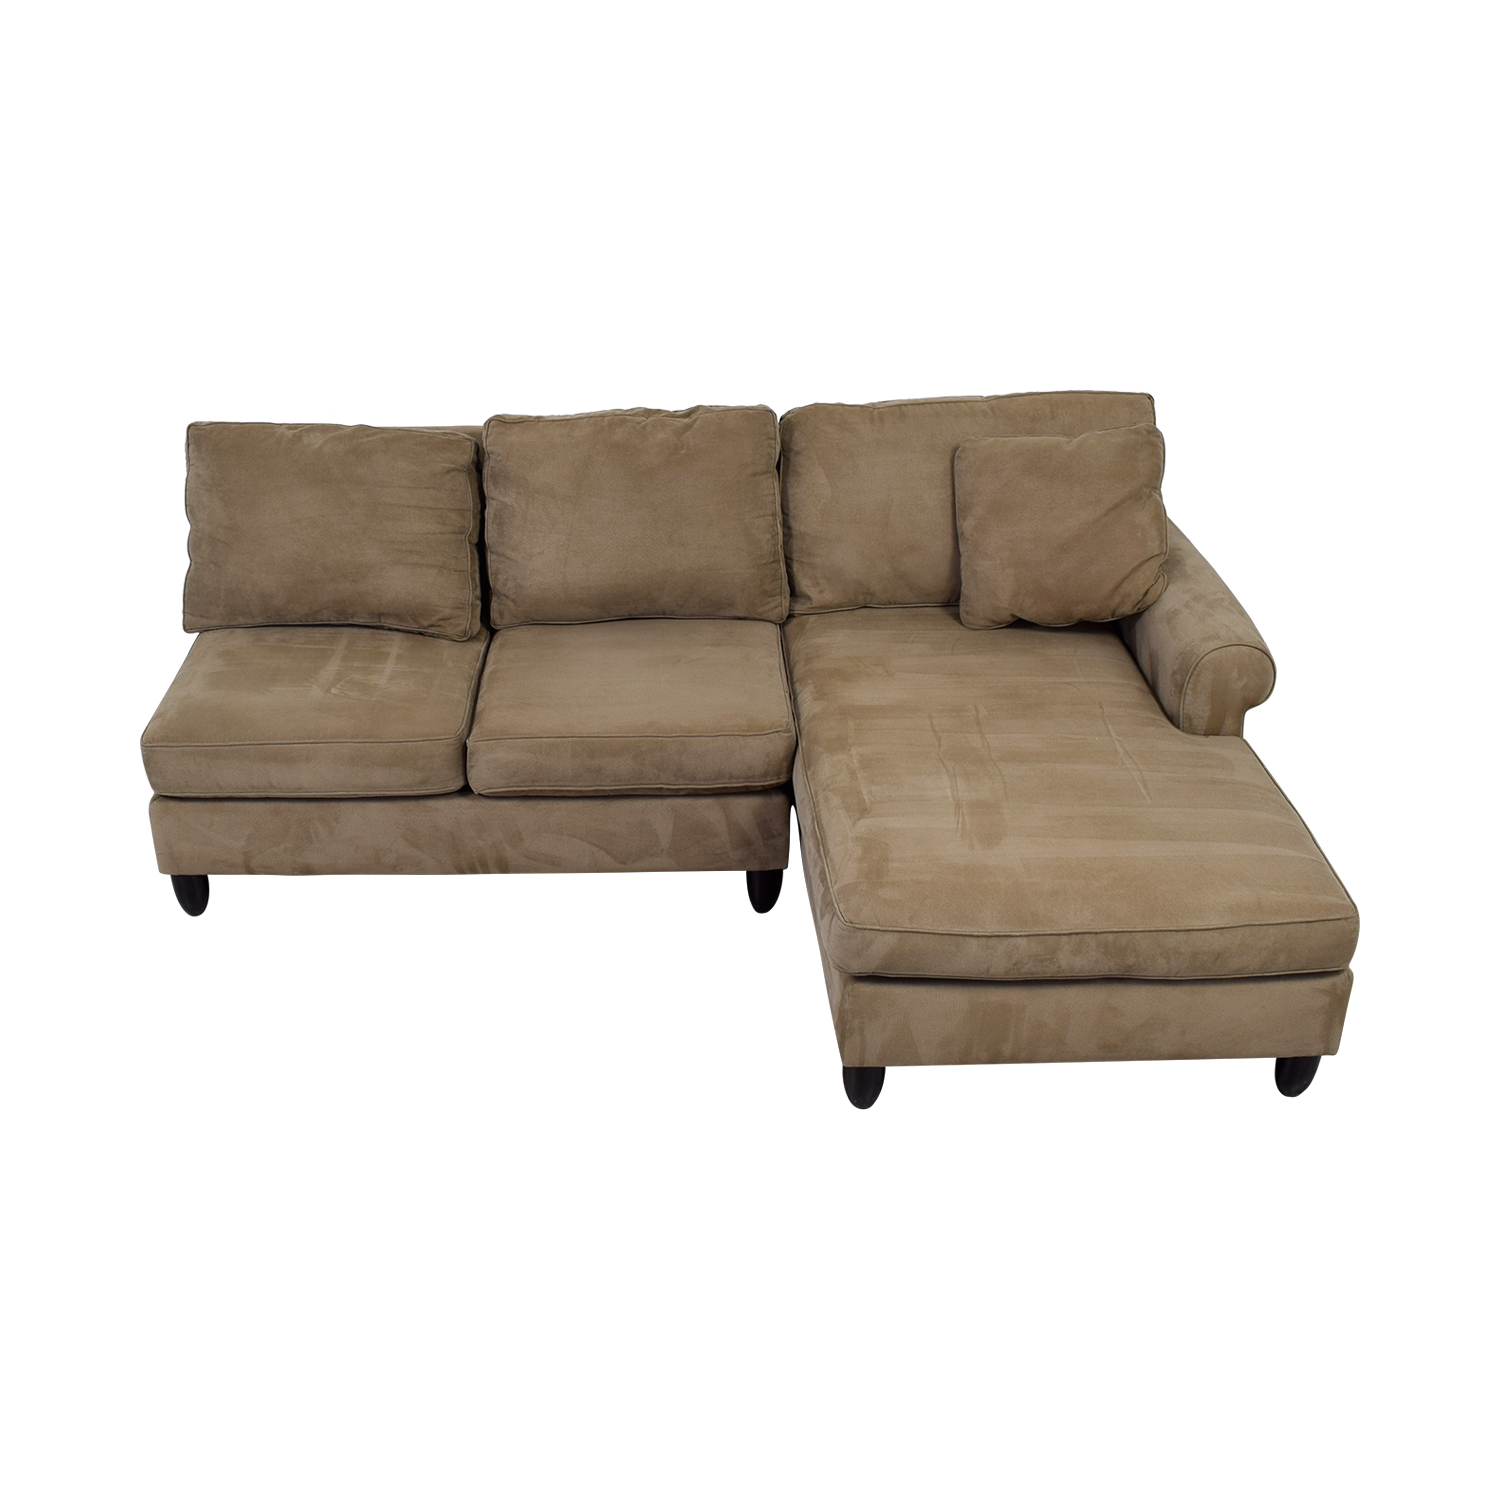 Haverty's Haverty's Tan Chaise Sectional coupon